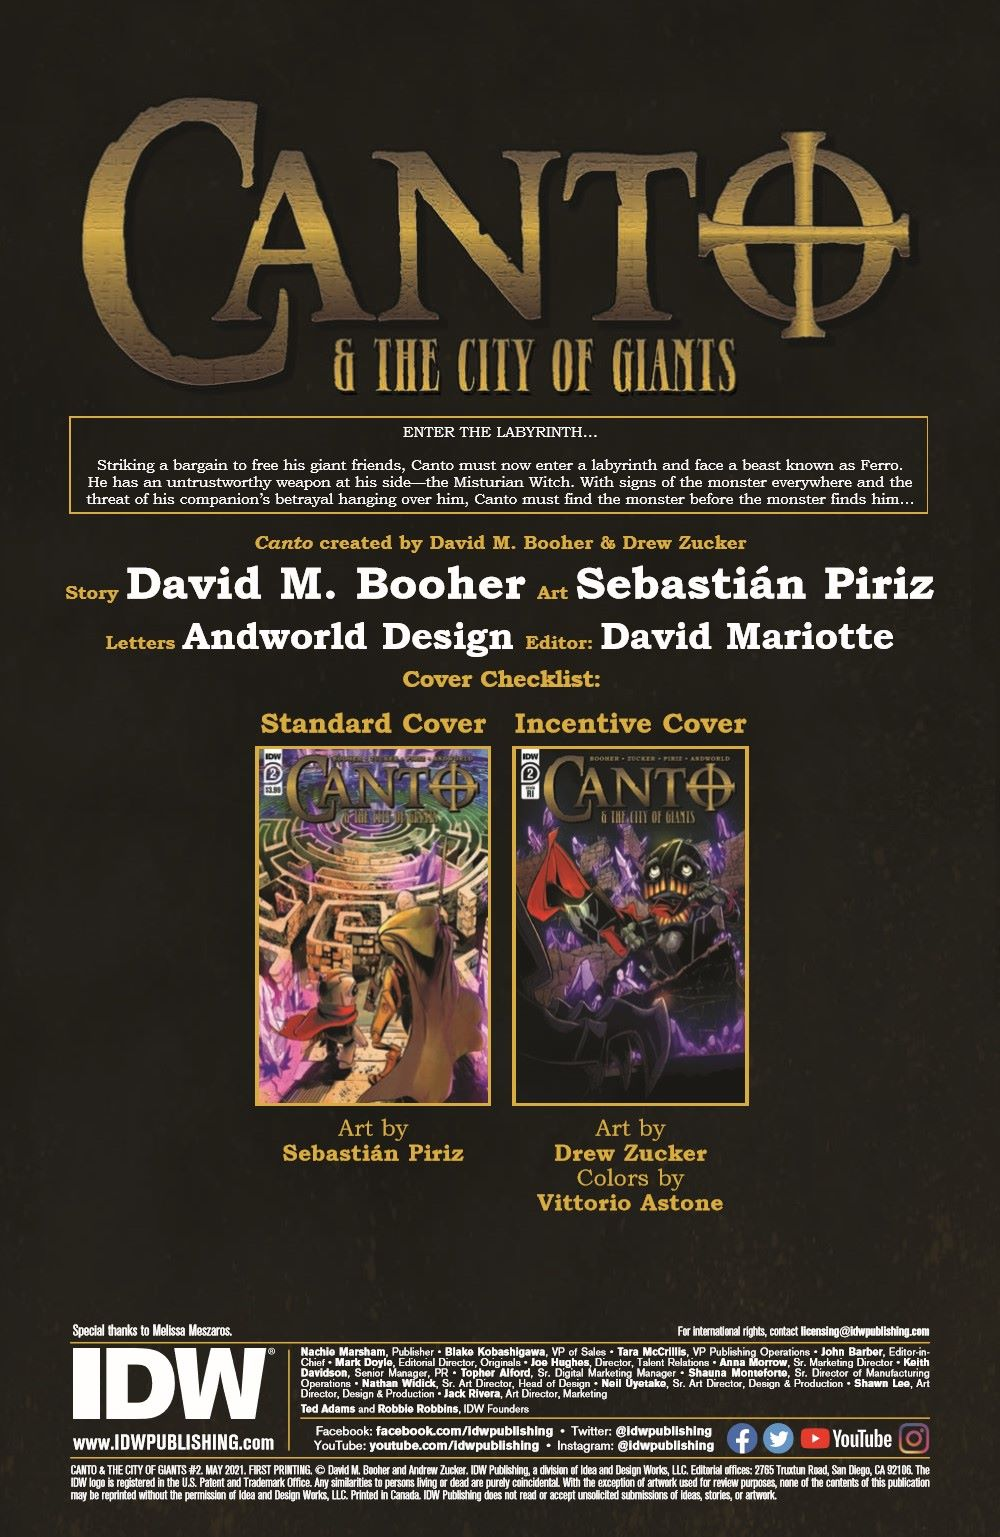 Canto-CoG02_pr-2 ComicList Previews: CANTO AND THE CITY OF GIANTS #2 (OF 3)